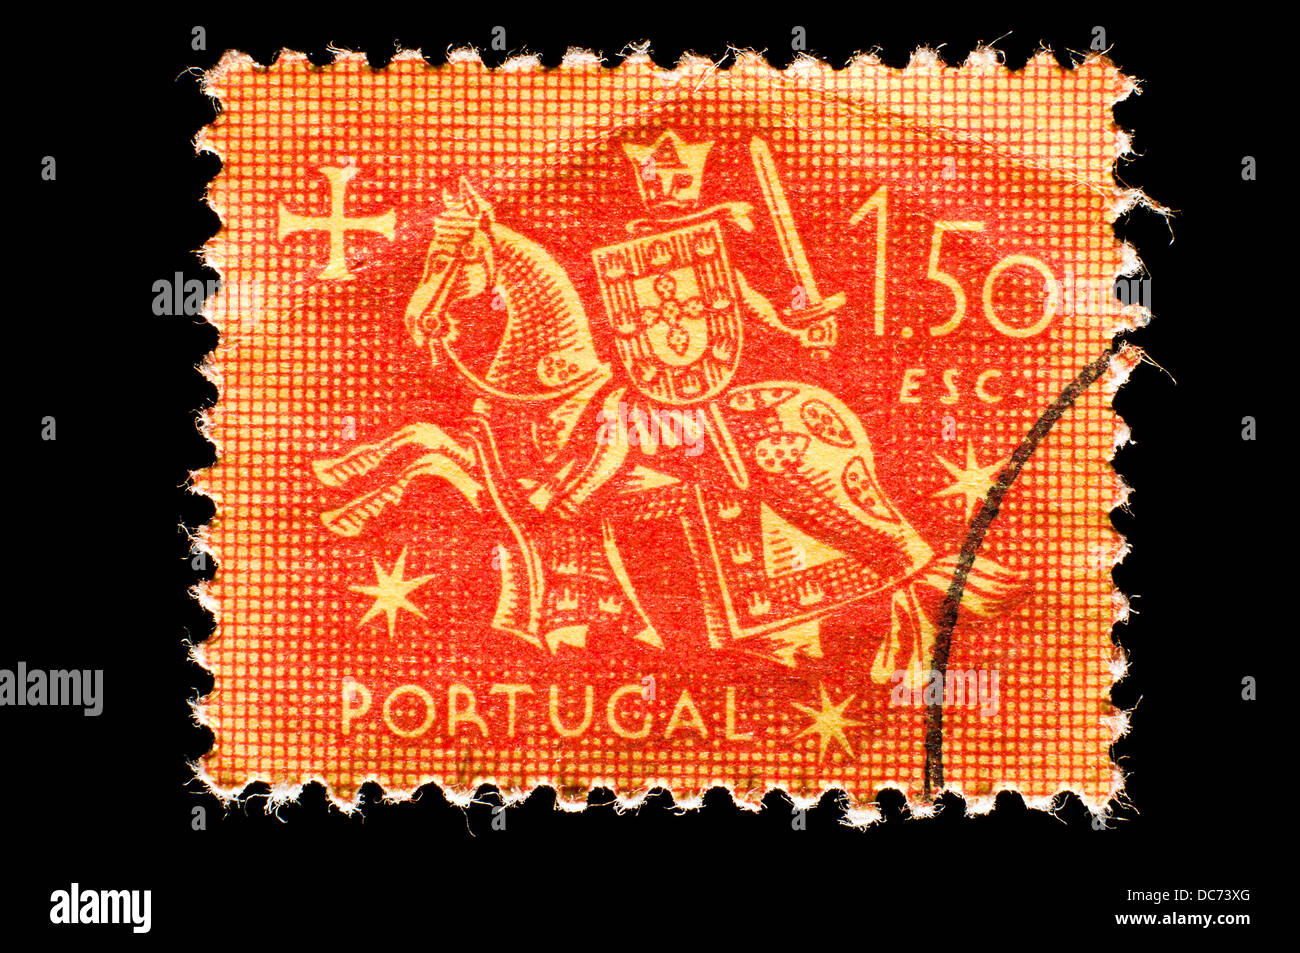 old Portugal postage stamp - Stock Image